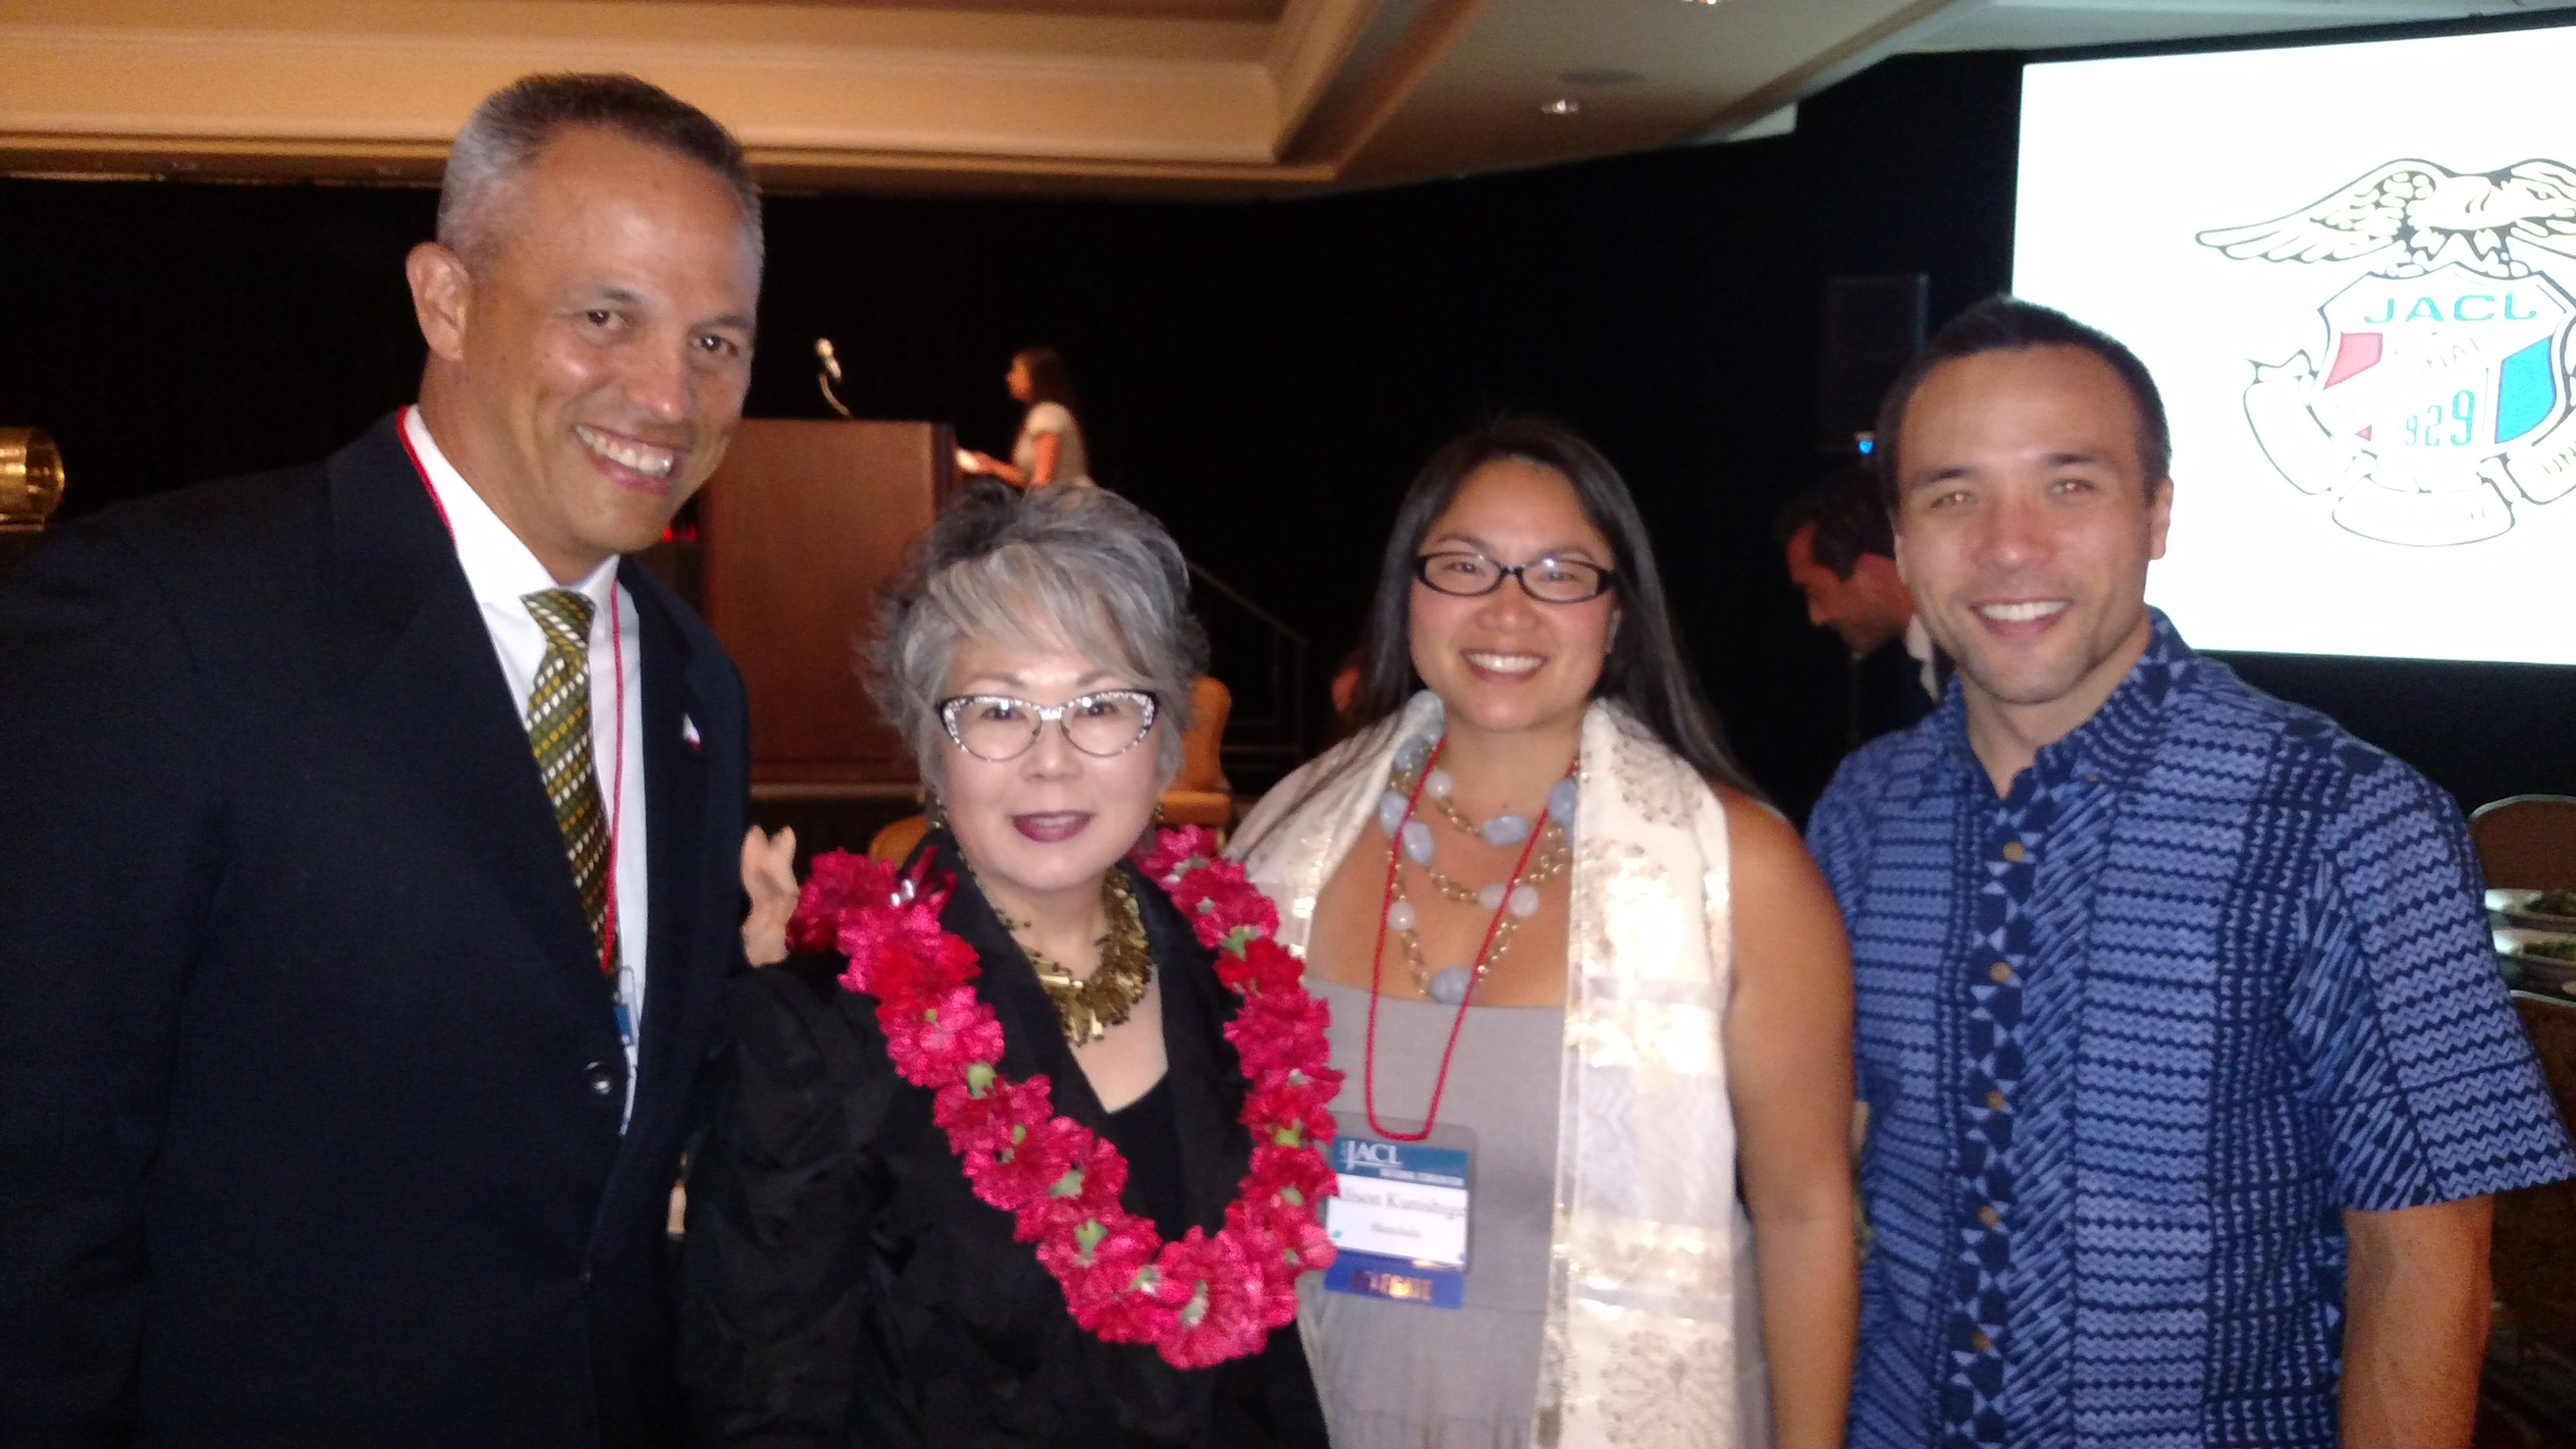 Photo of Carole Hayashino (second from left) is pictured with JACL-Honolulu Chapter board members David Forman (far left), Alison Kunishige and Kent Mori Walther at the JACL national convention in Las Vegas. (Photo courtesy JCCH)